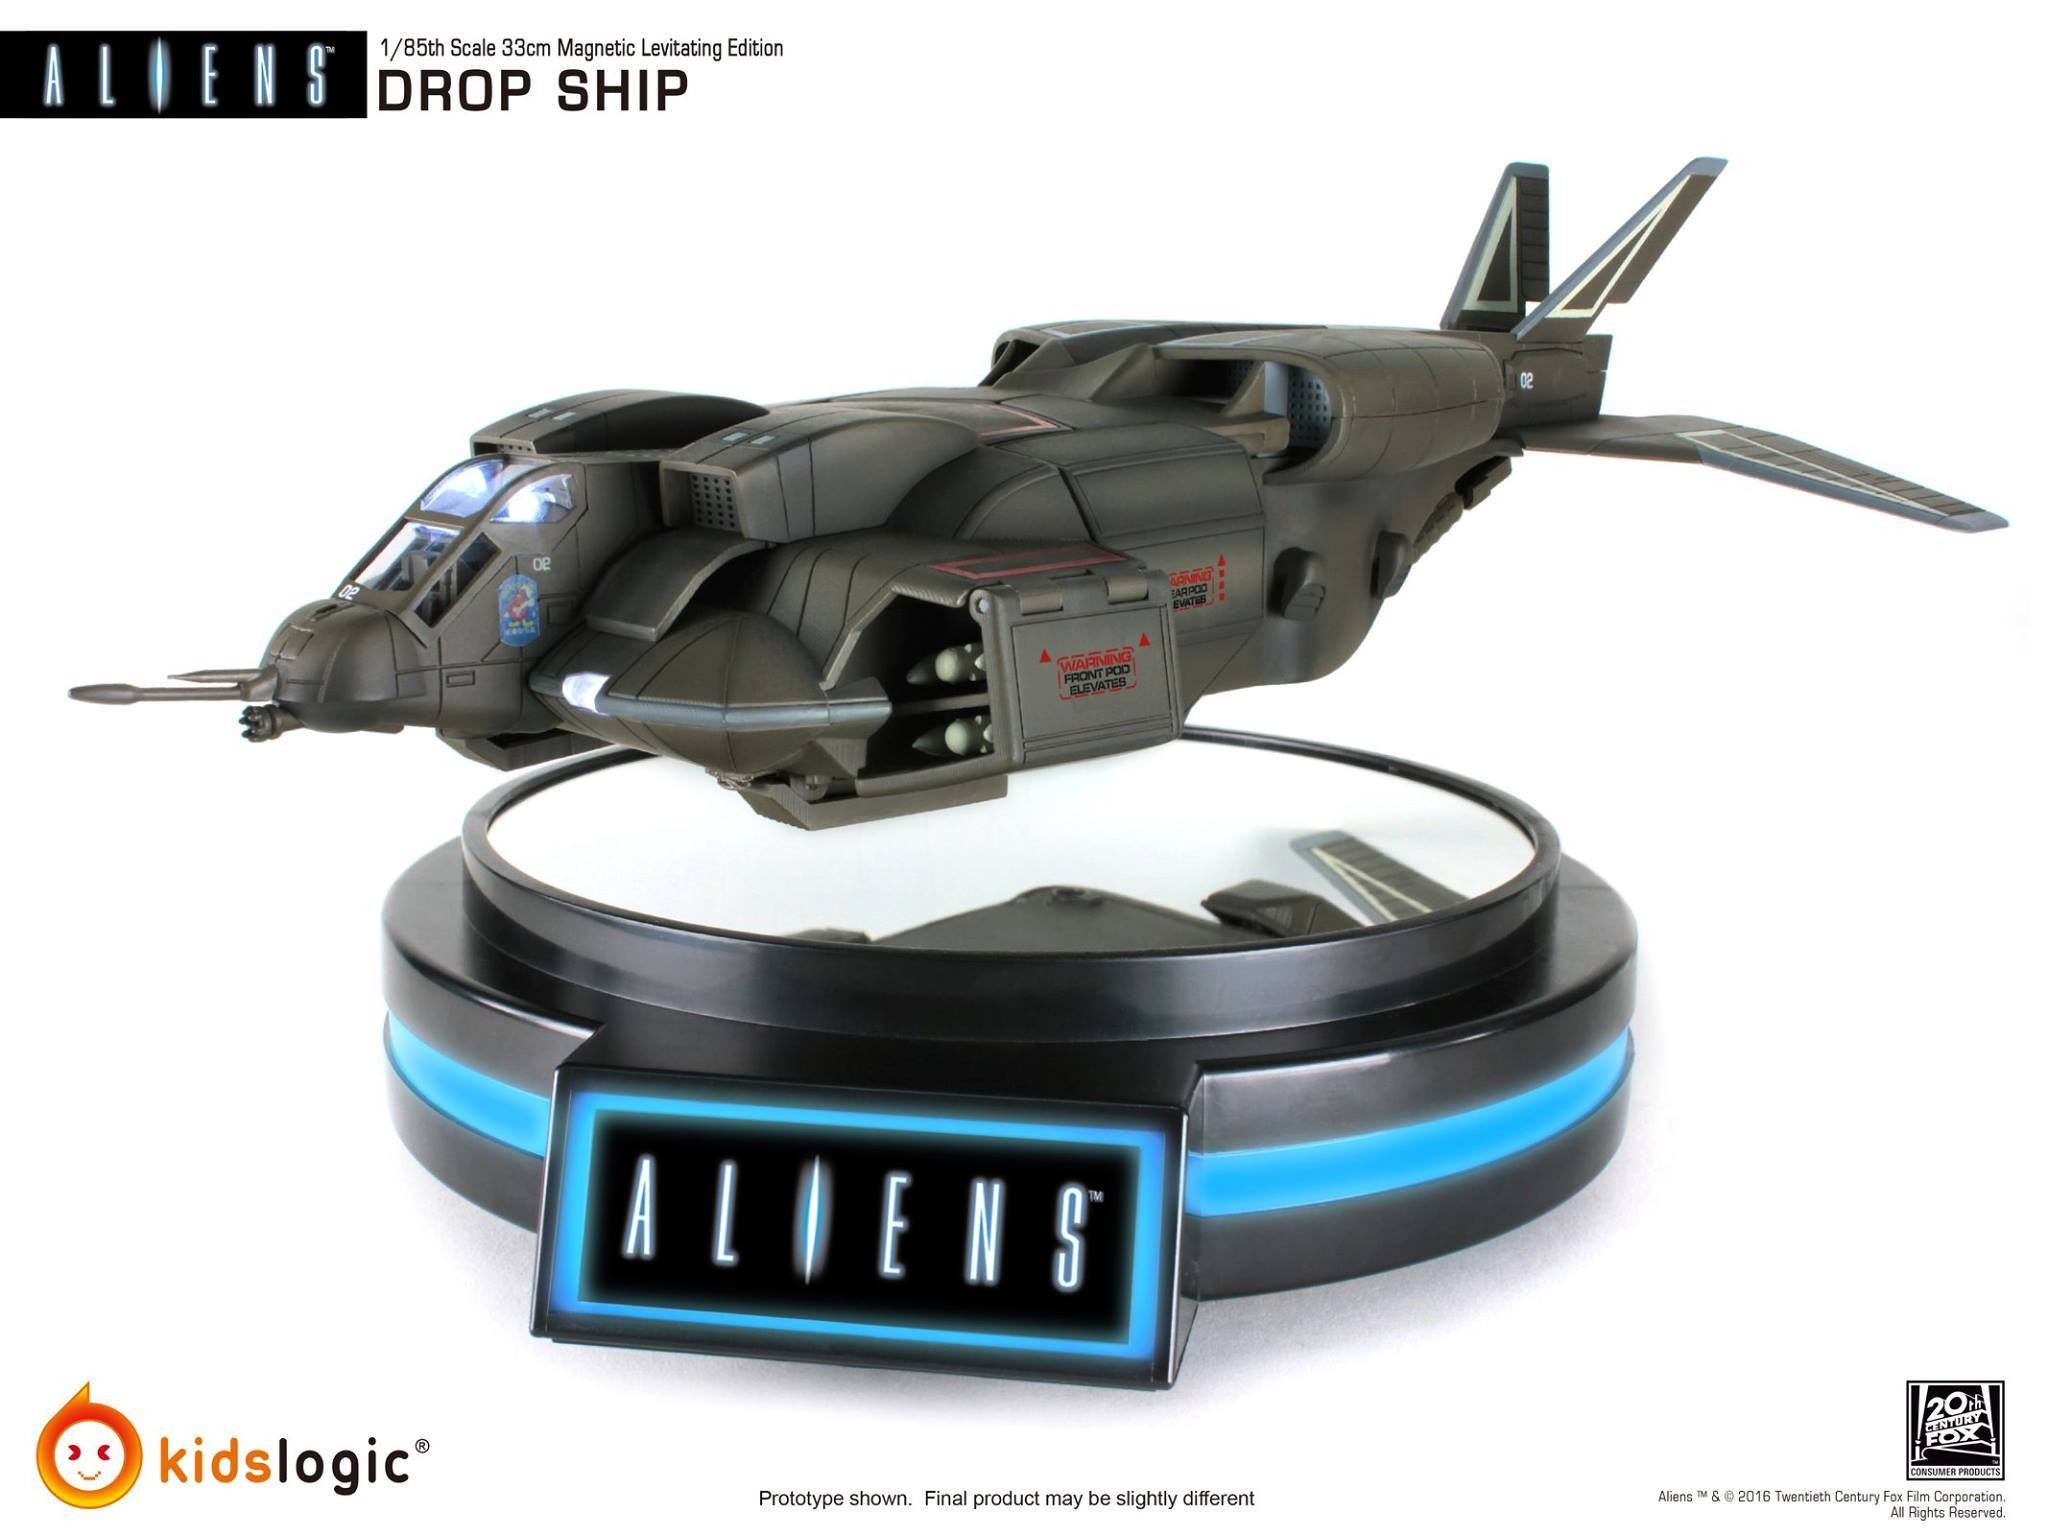 Kids Logic - ML-04 - Aliens - 1/85 Magnetic Levitating Drop Ship - Marvelous Toys - 3